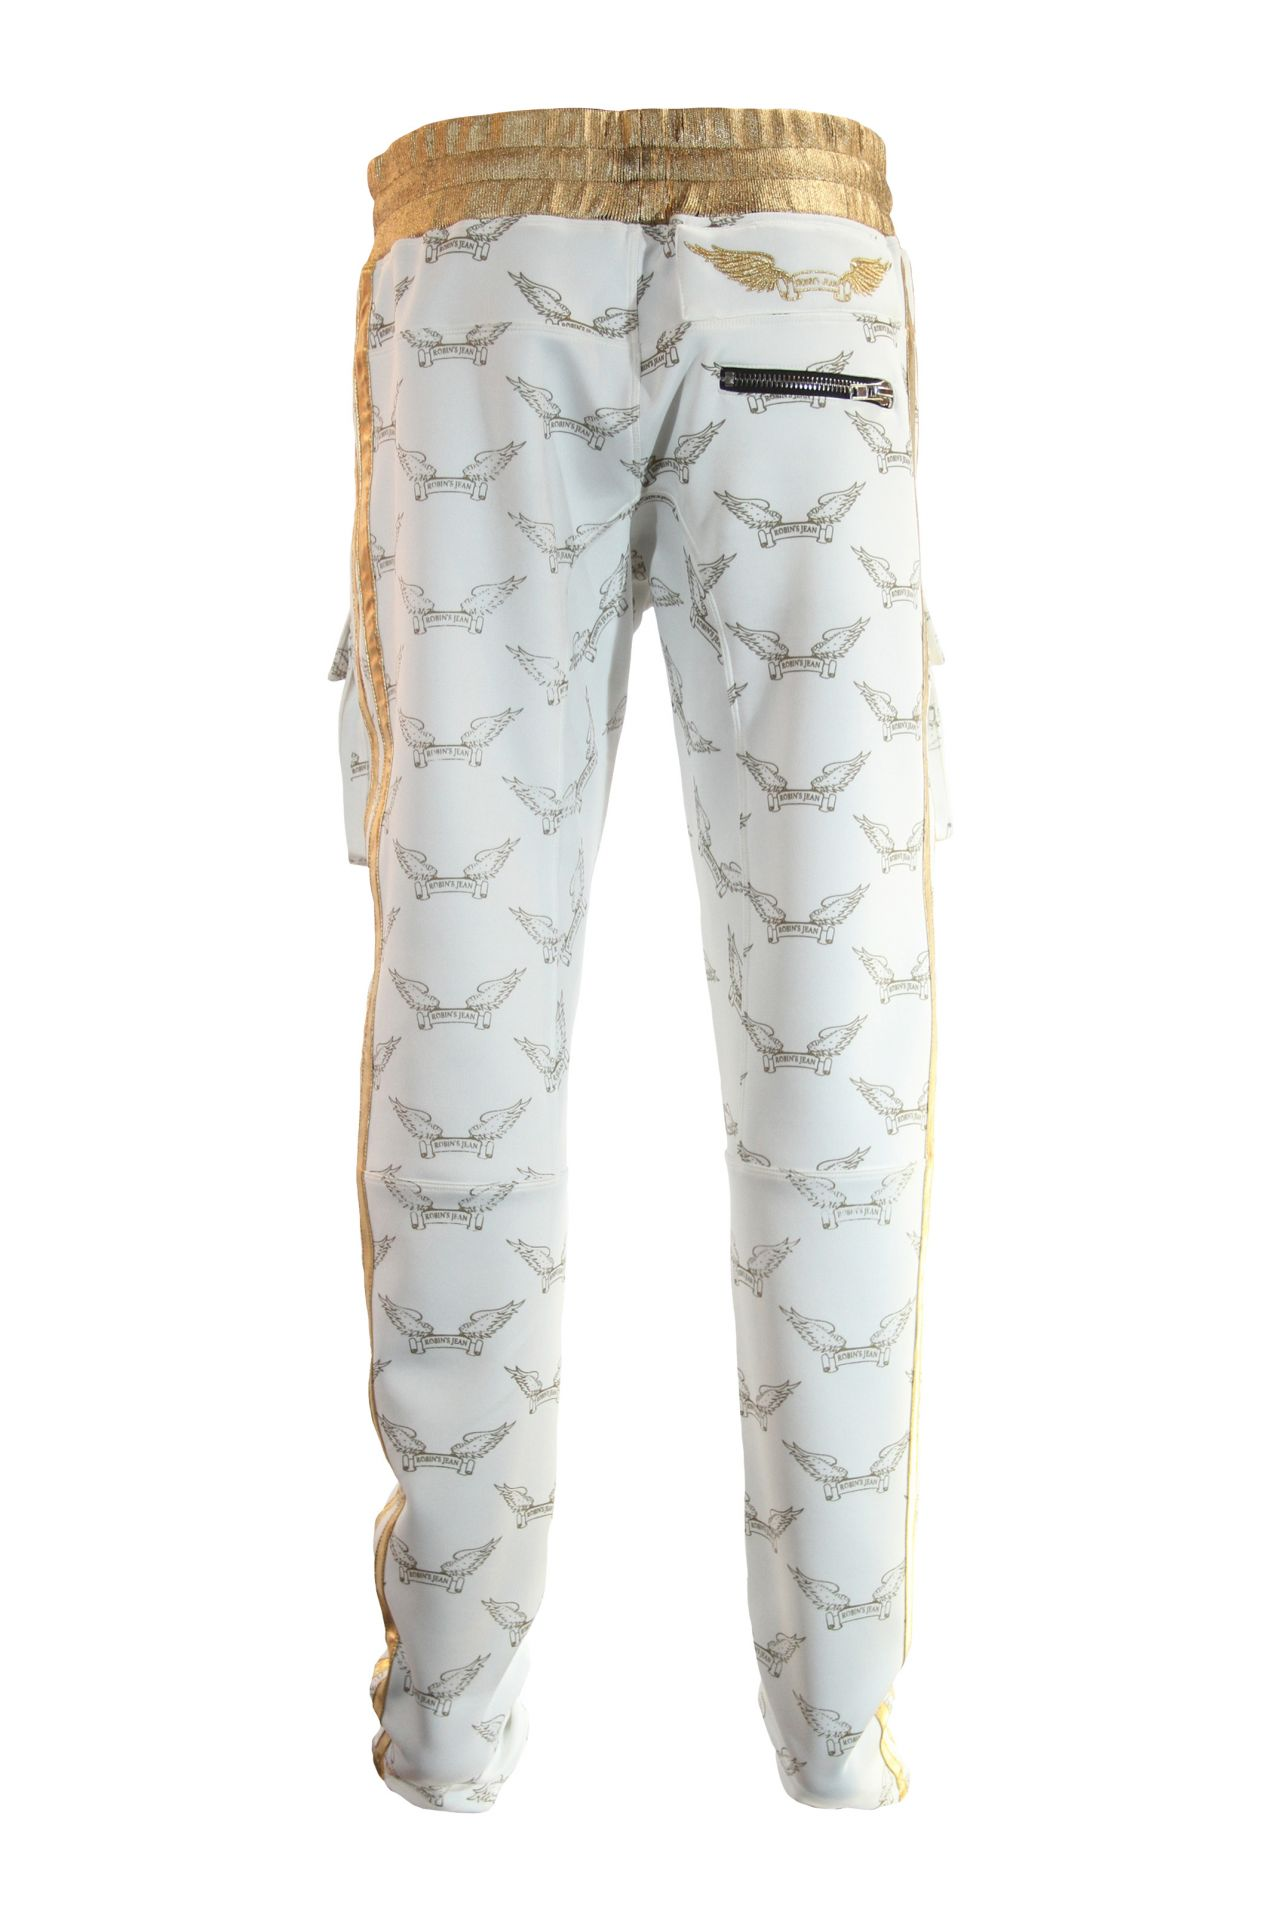 ROBIN'S MONOGRAM JOGGER IN WHITE AND GOLD